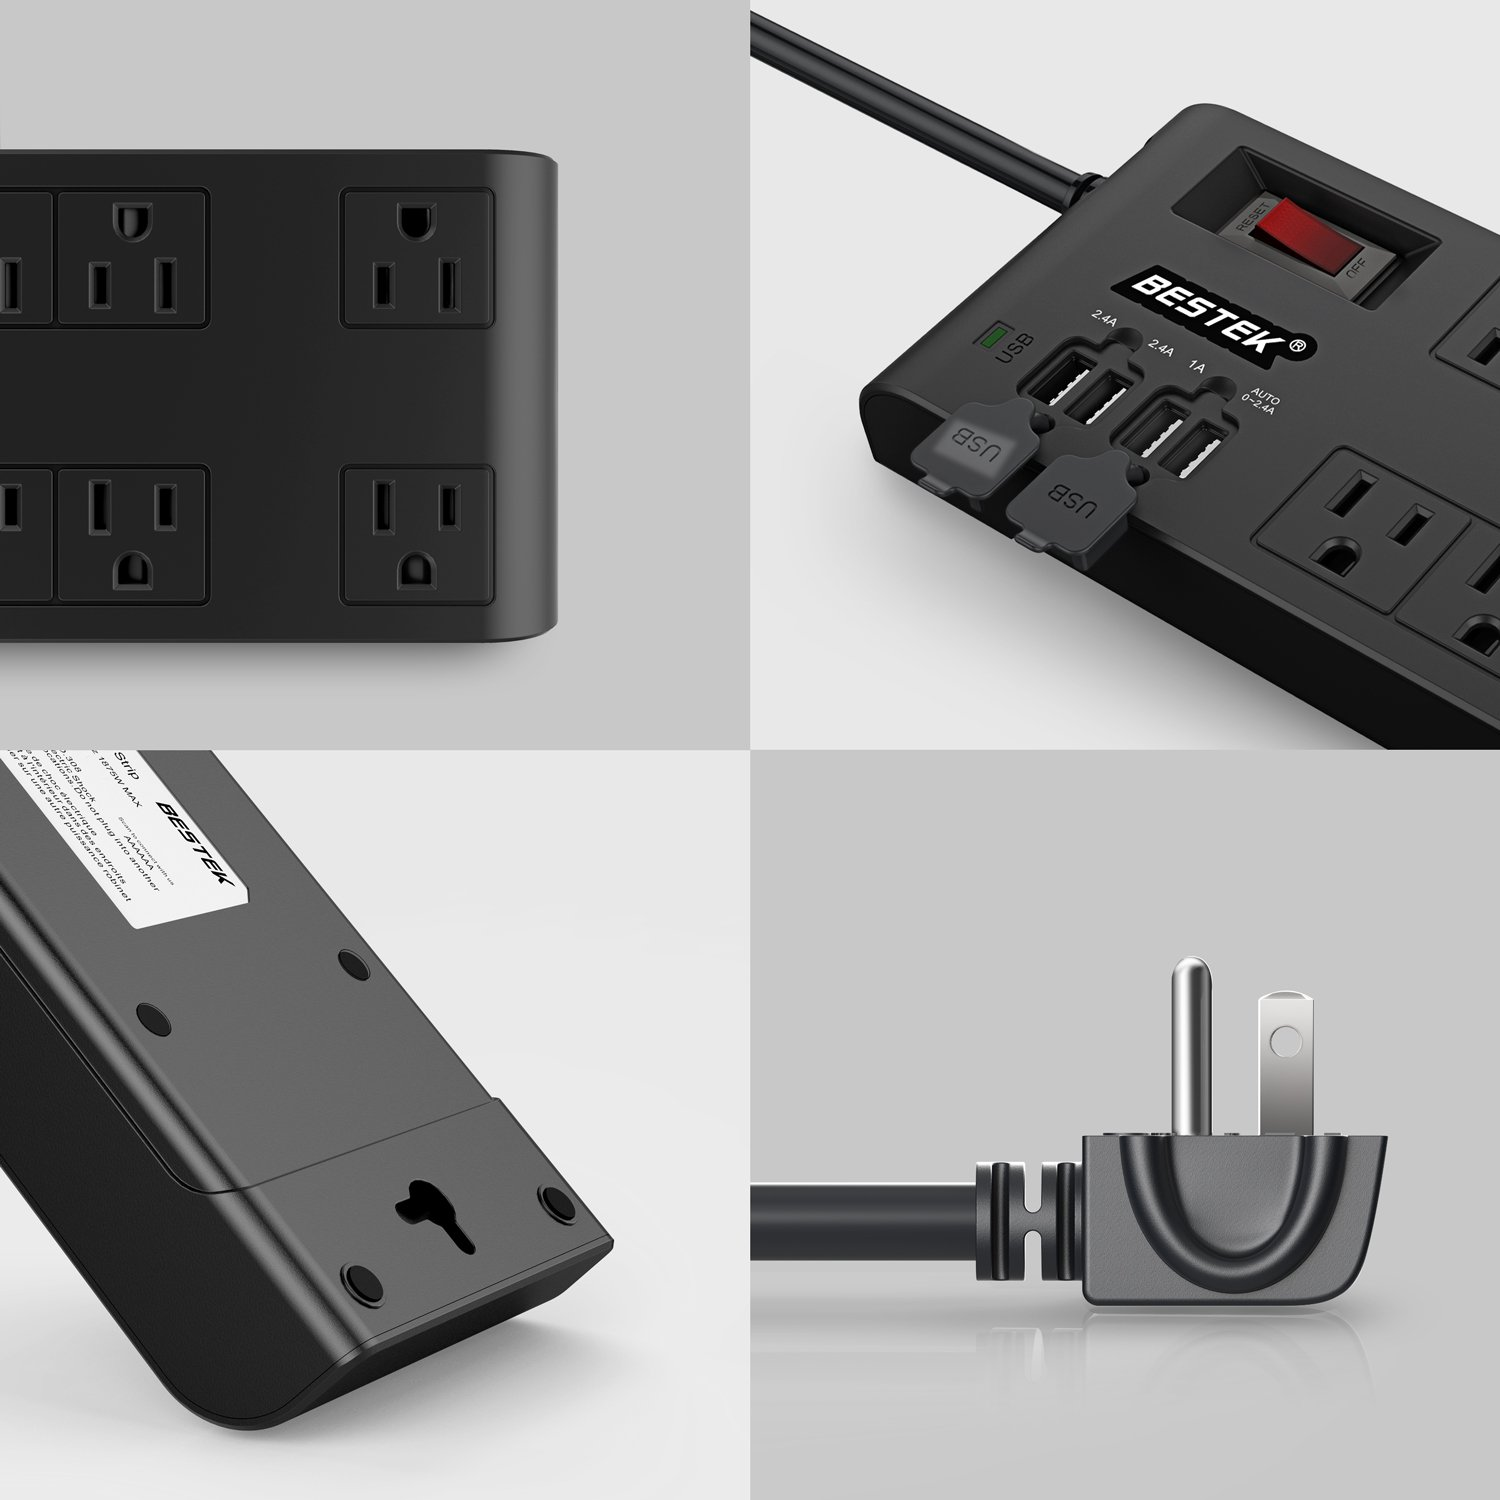 BESTEK 8-Outlet Surge Protector Power Strip with 4 USB Charging Ports and 10-Foot Heavy Duty Extension Cord, 600 Joule, ETL Listed, Black by BESTEK (Image #6)